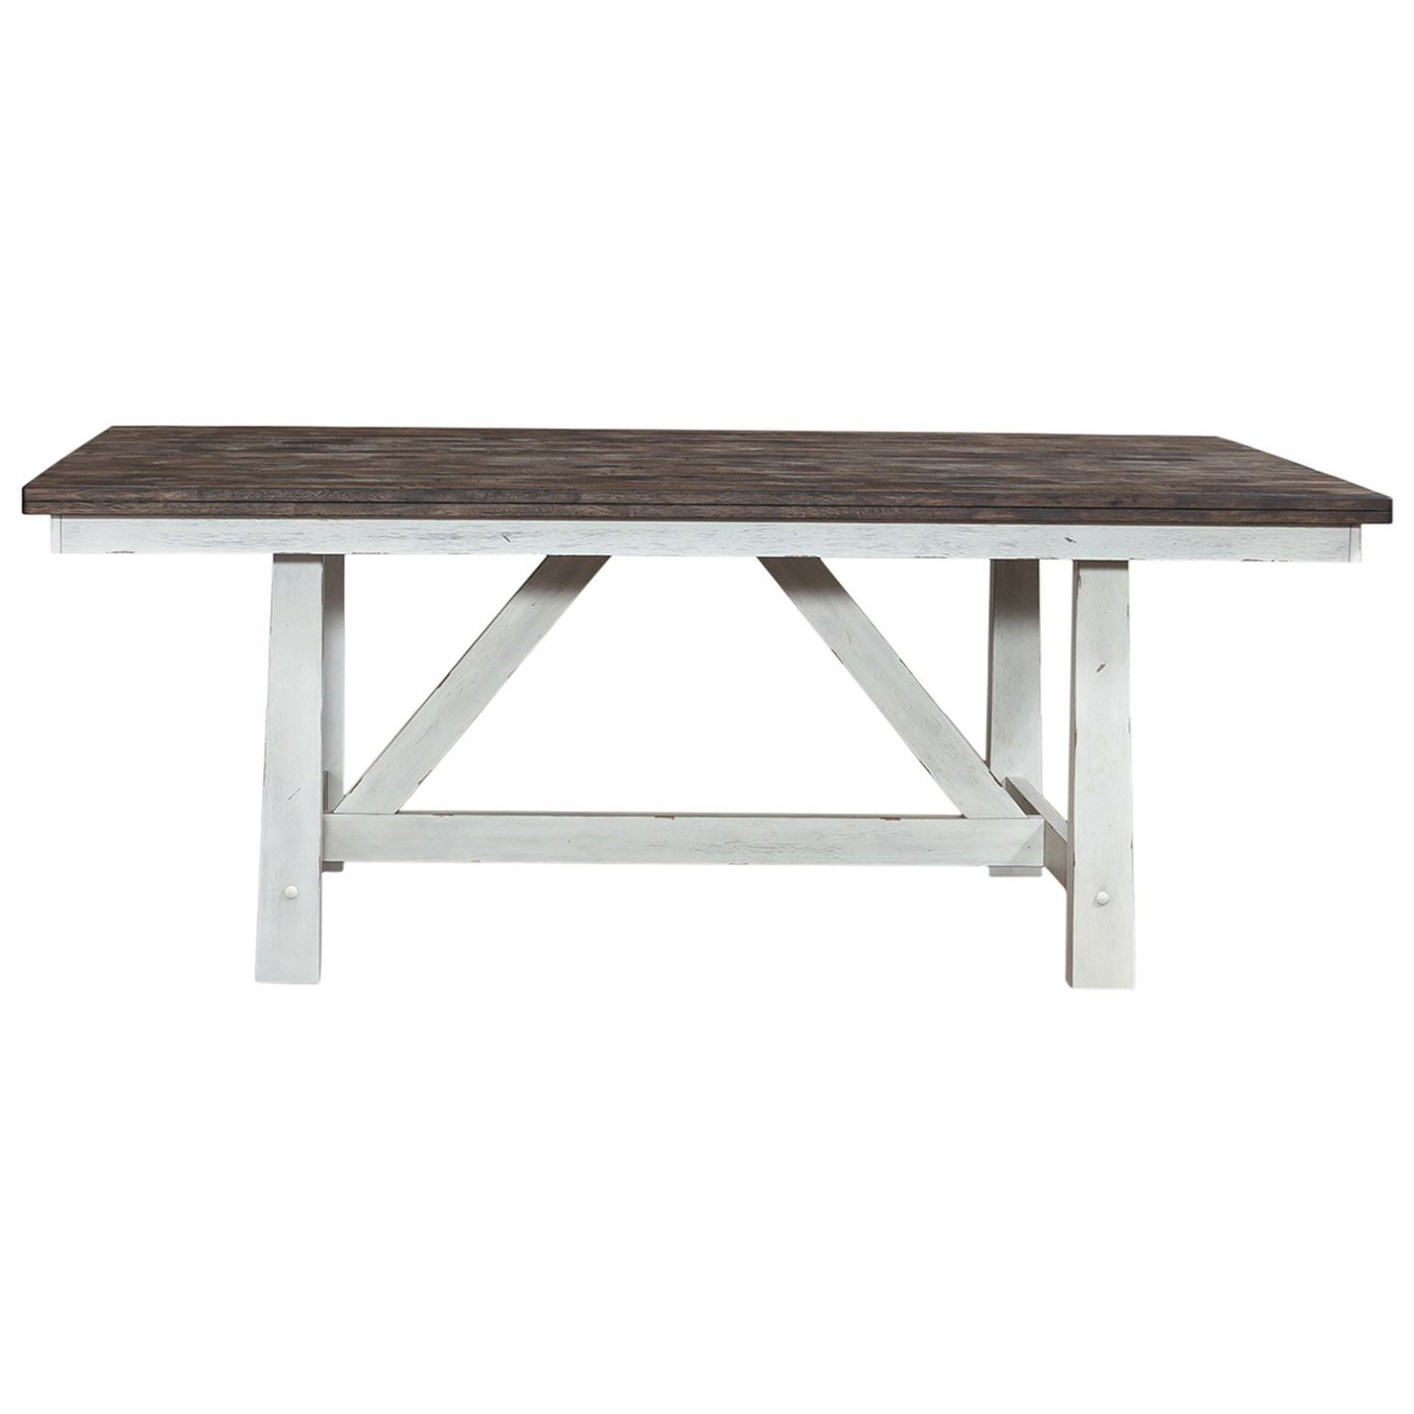 Farmhouse Fixed Top Trestle Table by Libby at Walker's Furniture